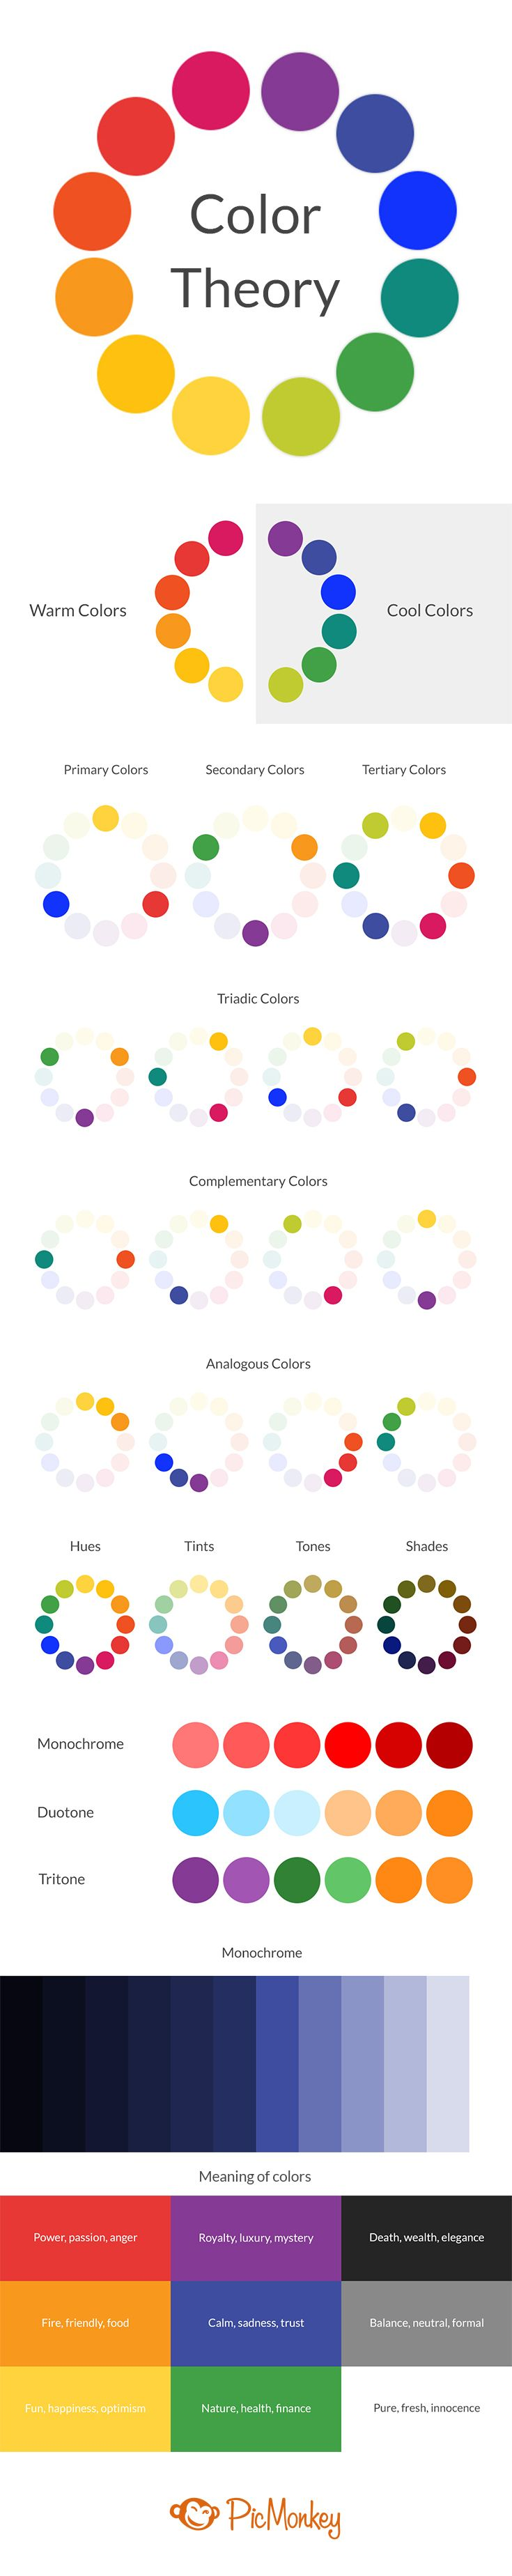 Color Theory: Choosing the Best Colors for Your Designs